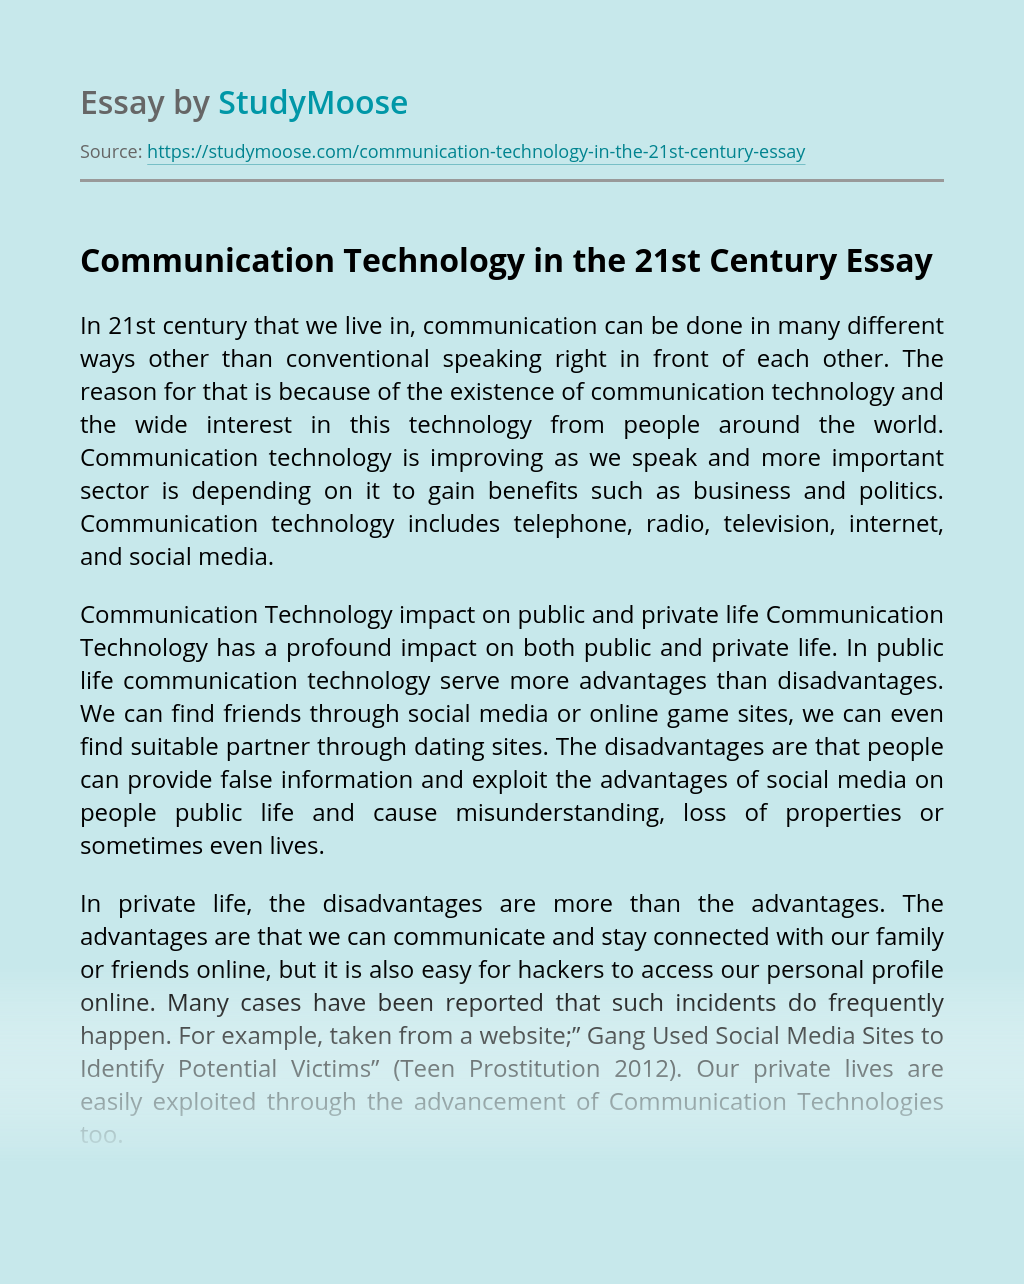 Communication Technology in the 21st Century